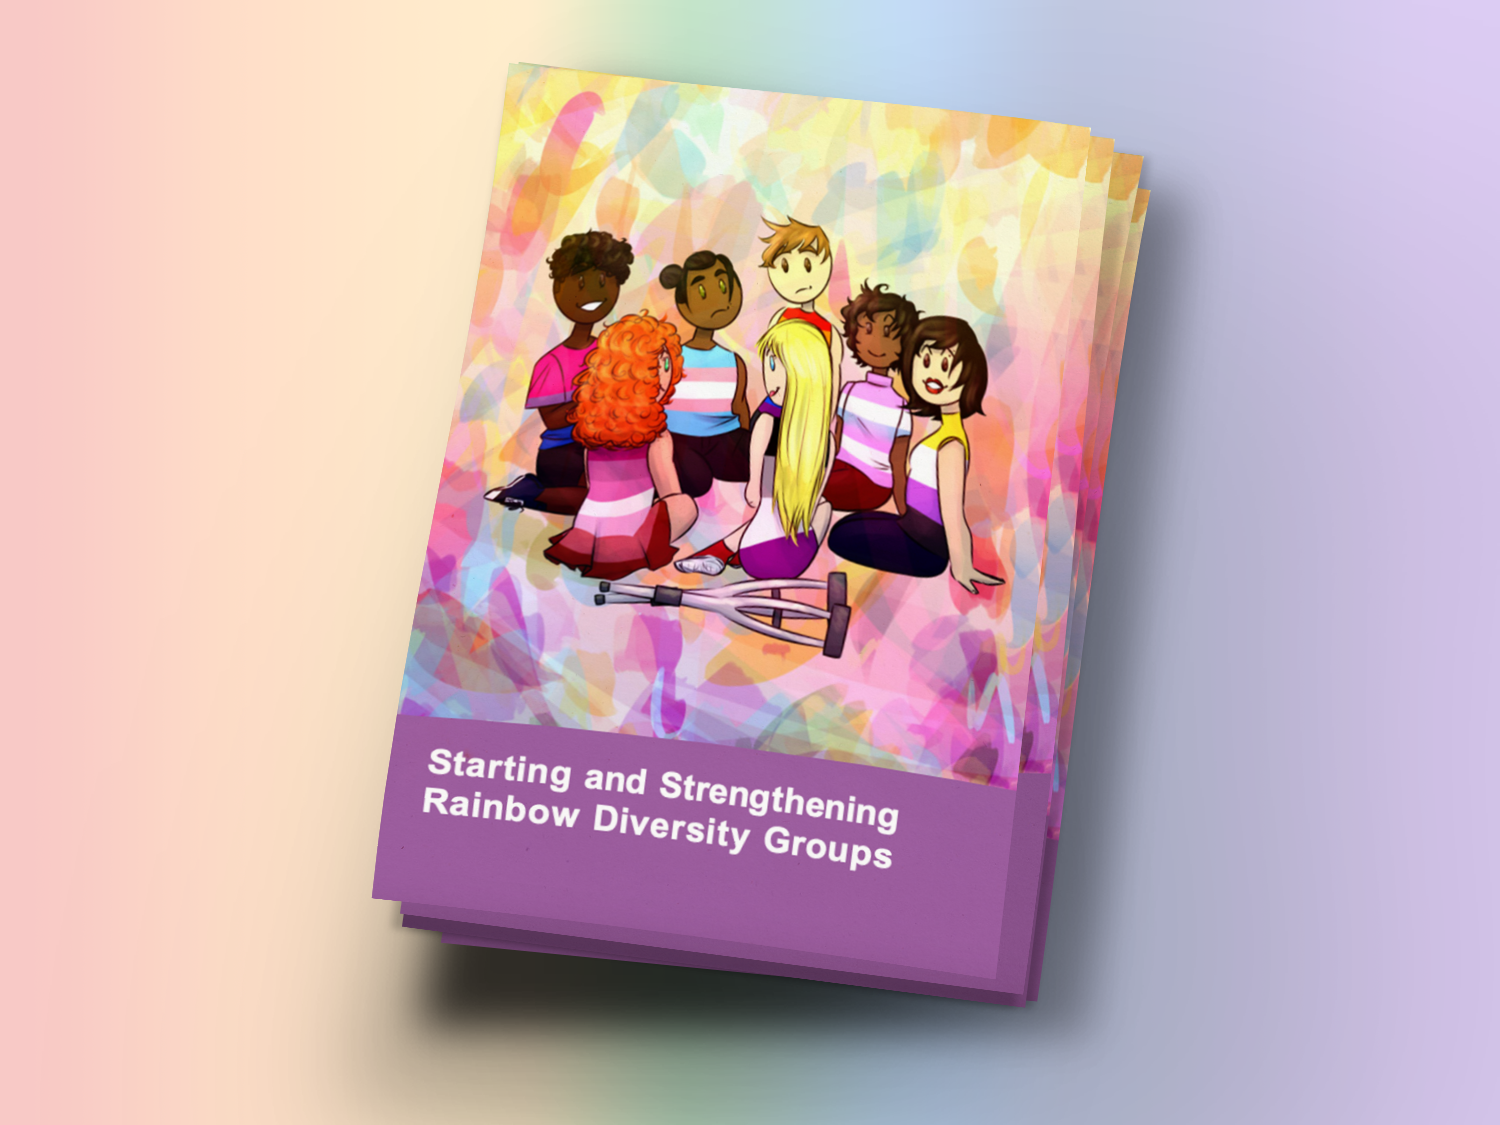 Starting and Strengthening Rainbow Diversity Groups